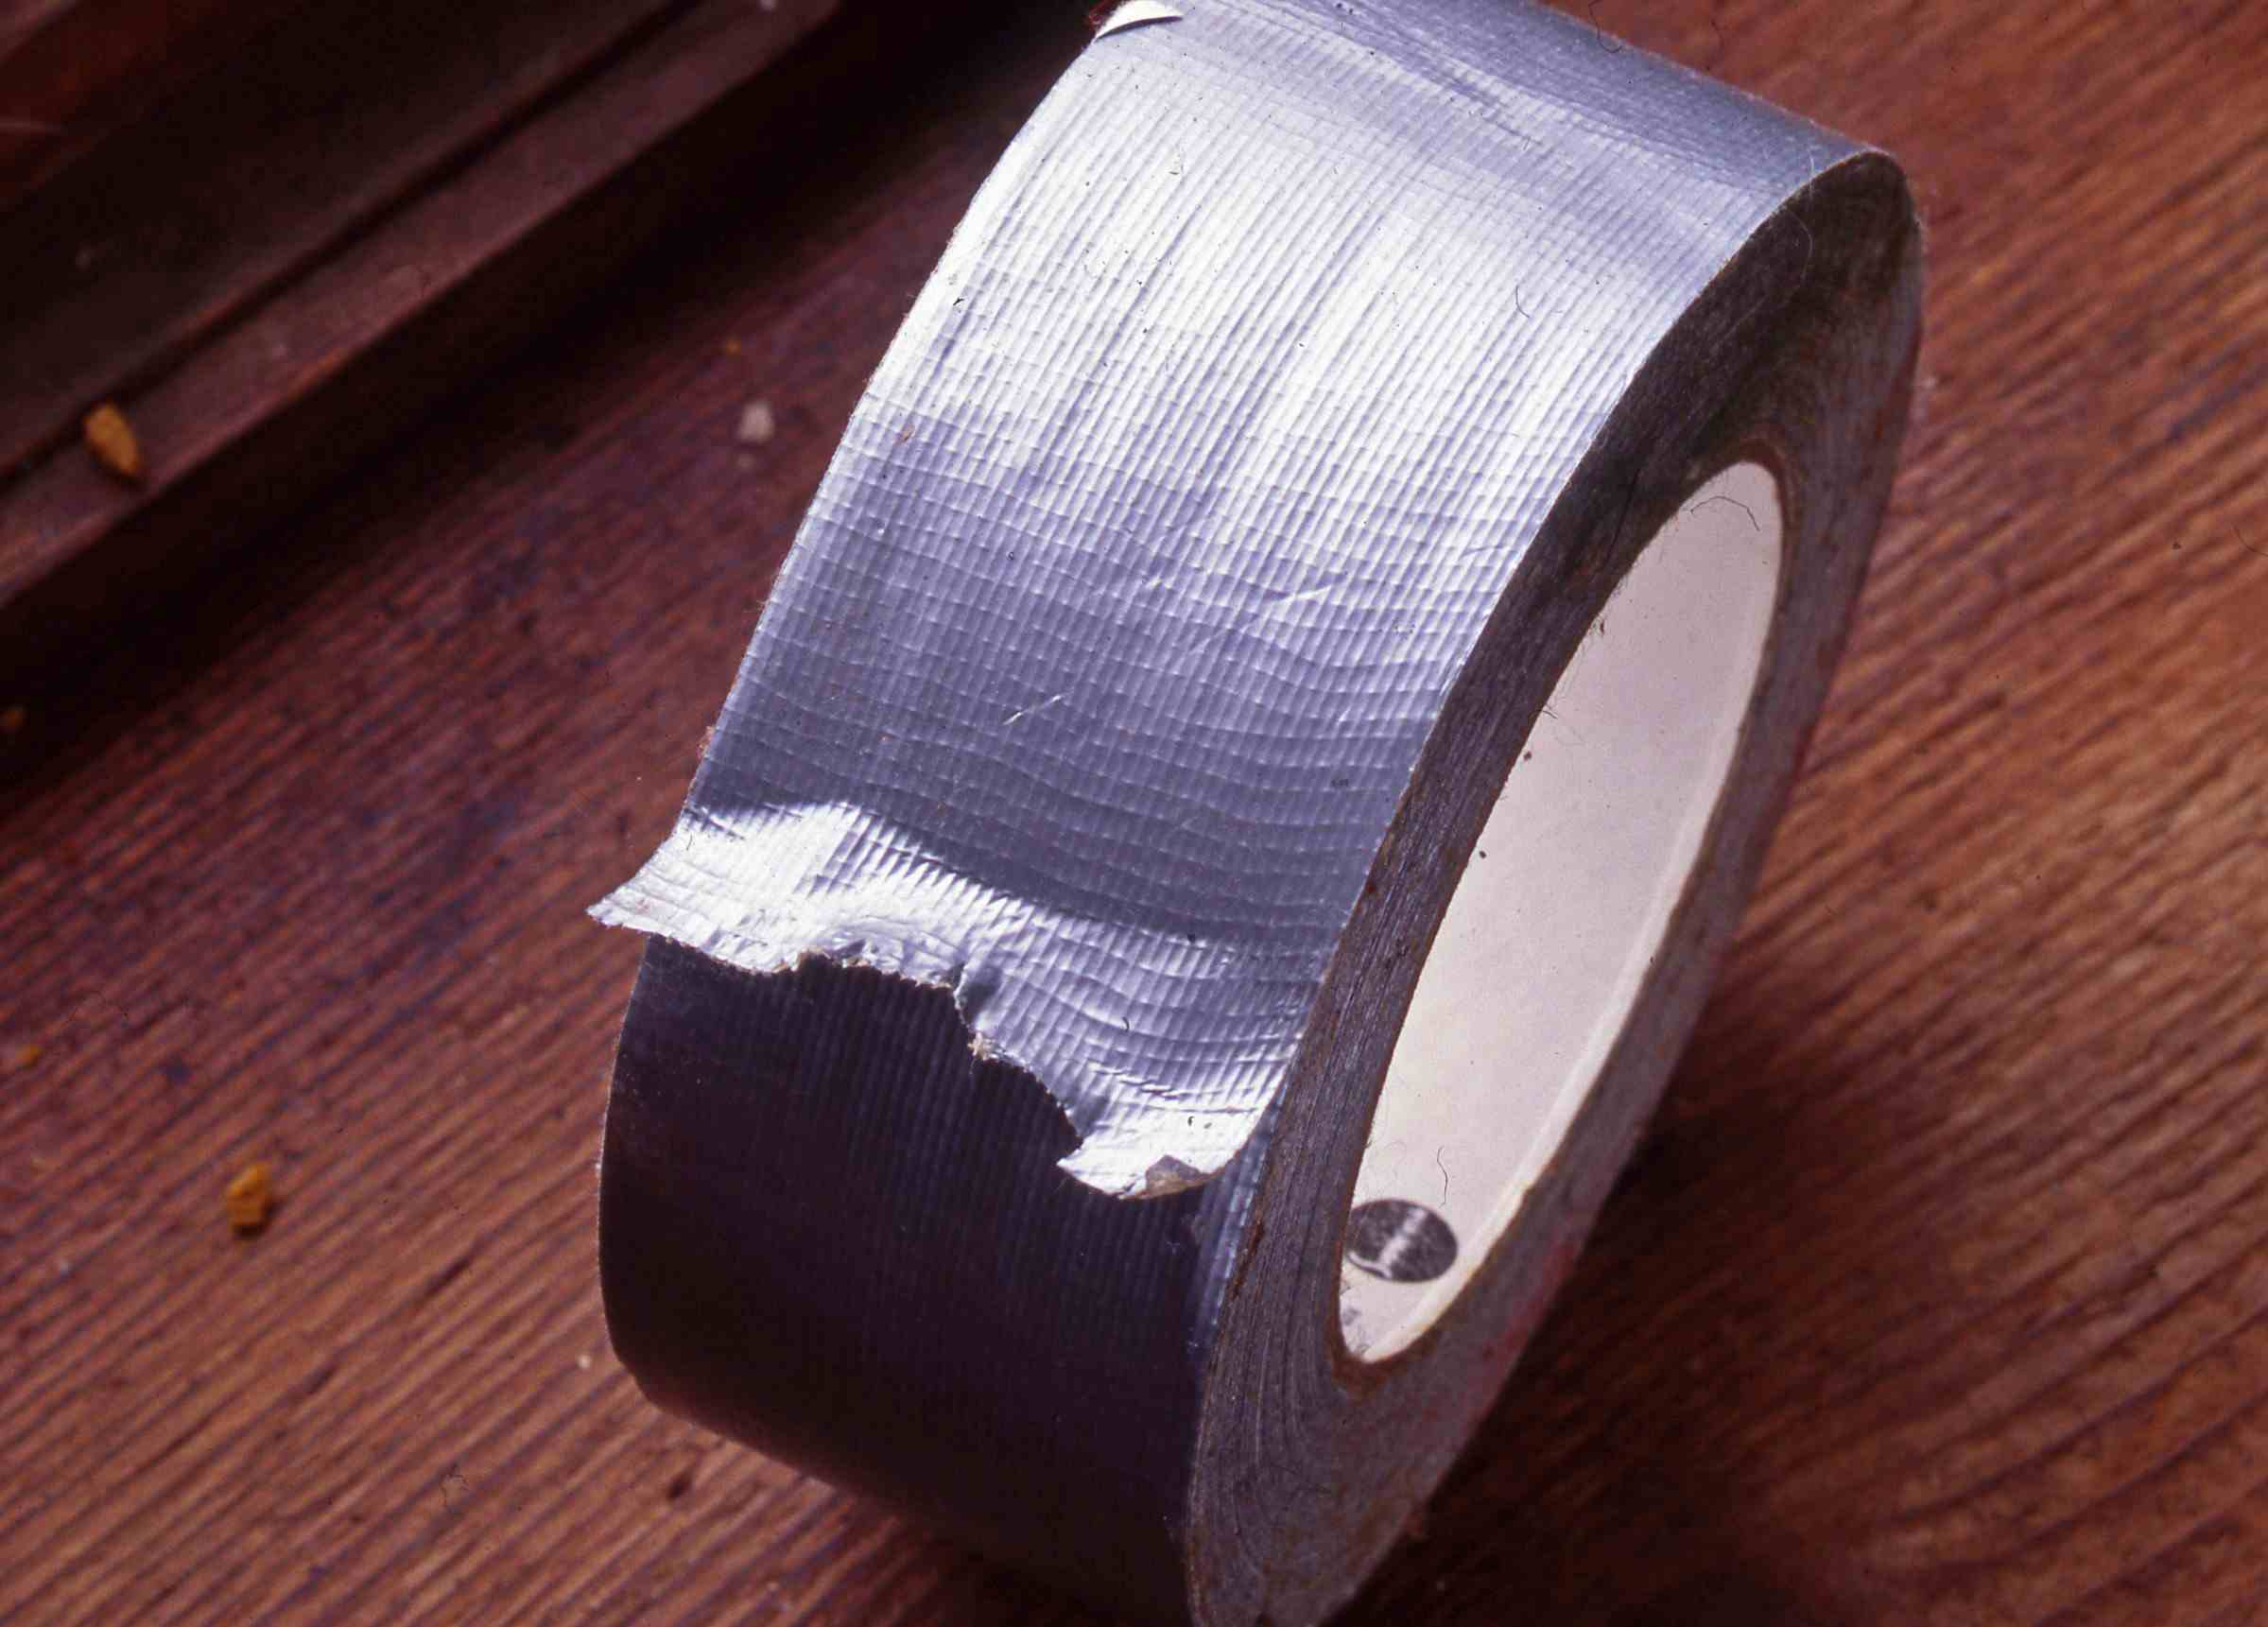 Close up of duct tape roll